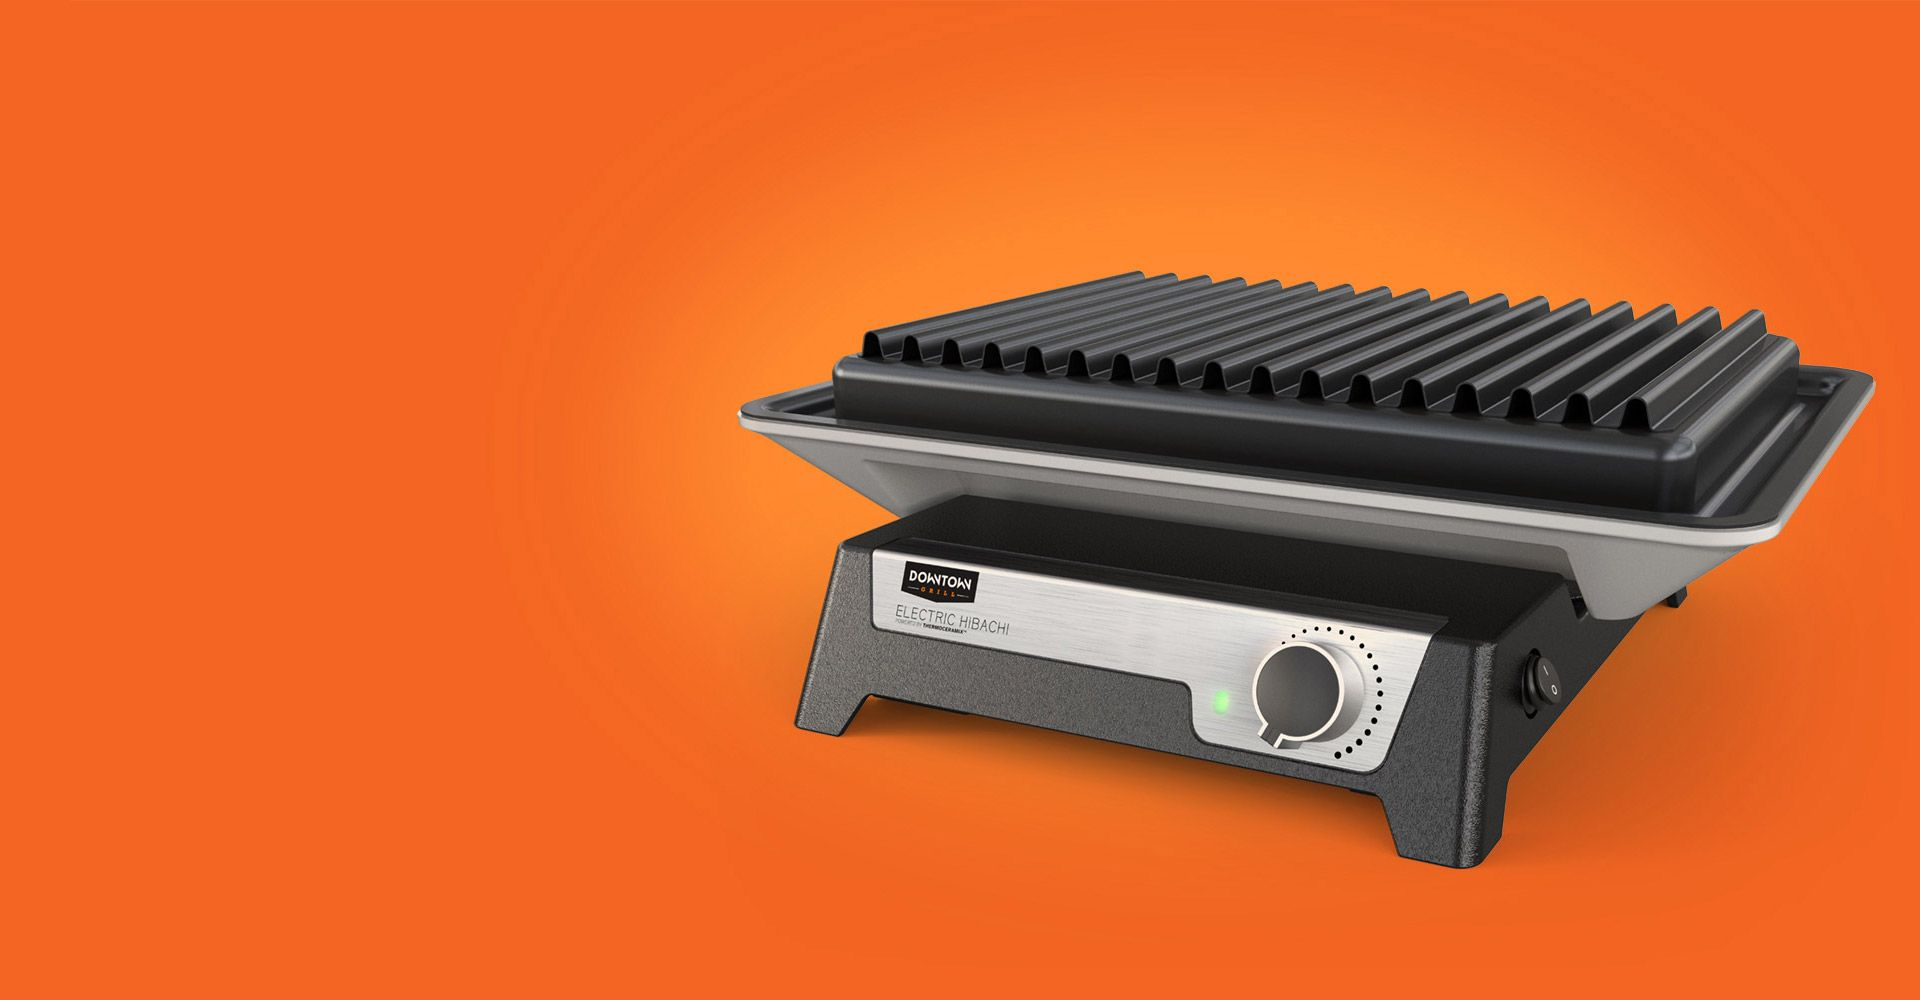 Perfect For Condos And Apartments The Electric Hibachi Is Hotter Than Most Gas Barbecue Visit Us To Learn More About World S Best Grill